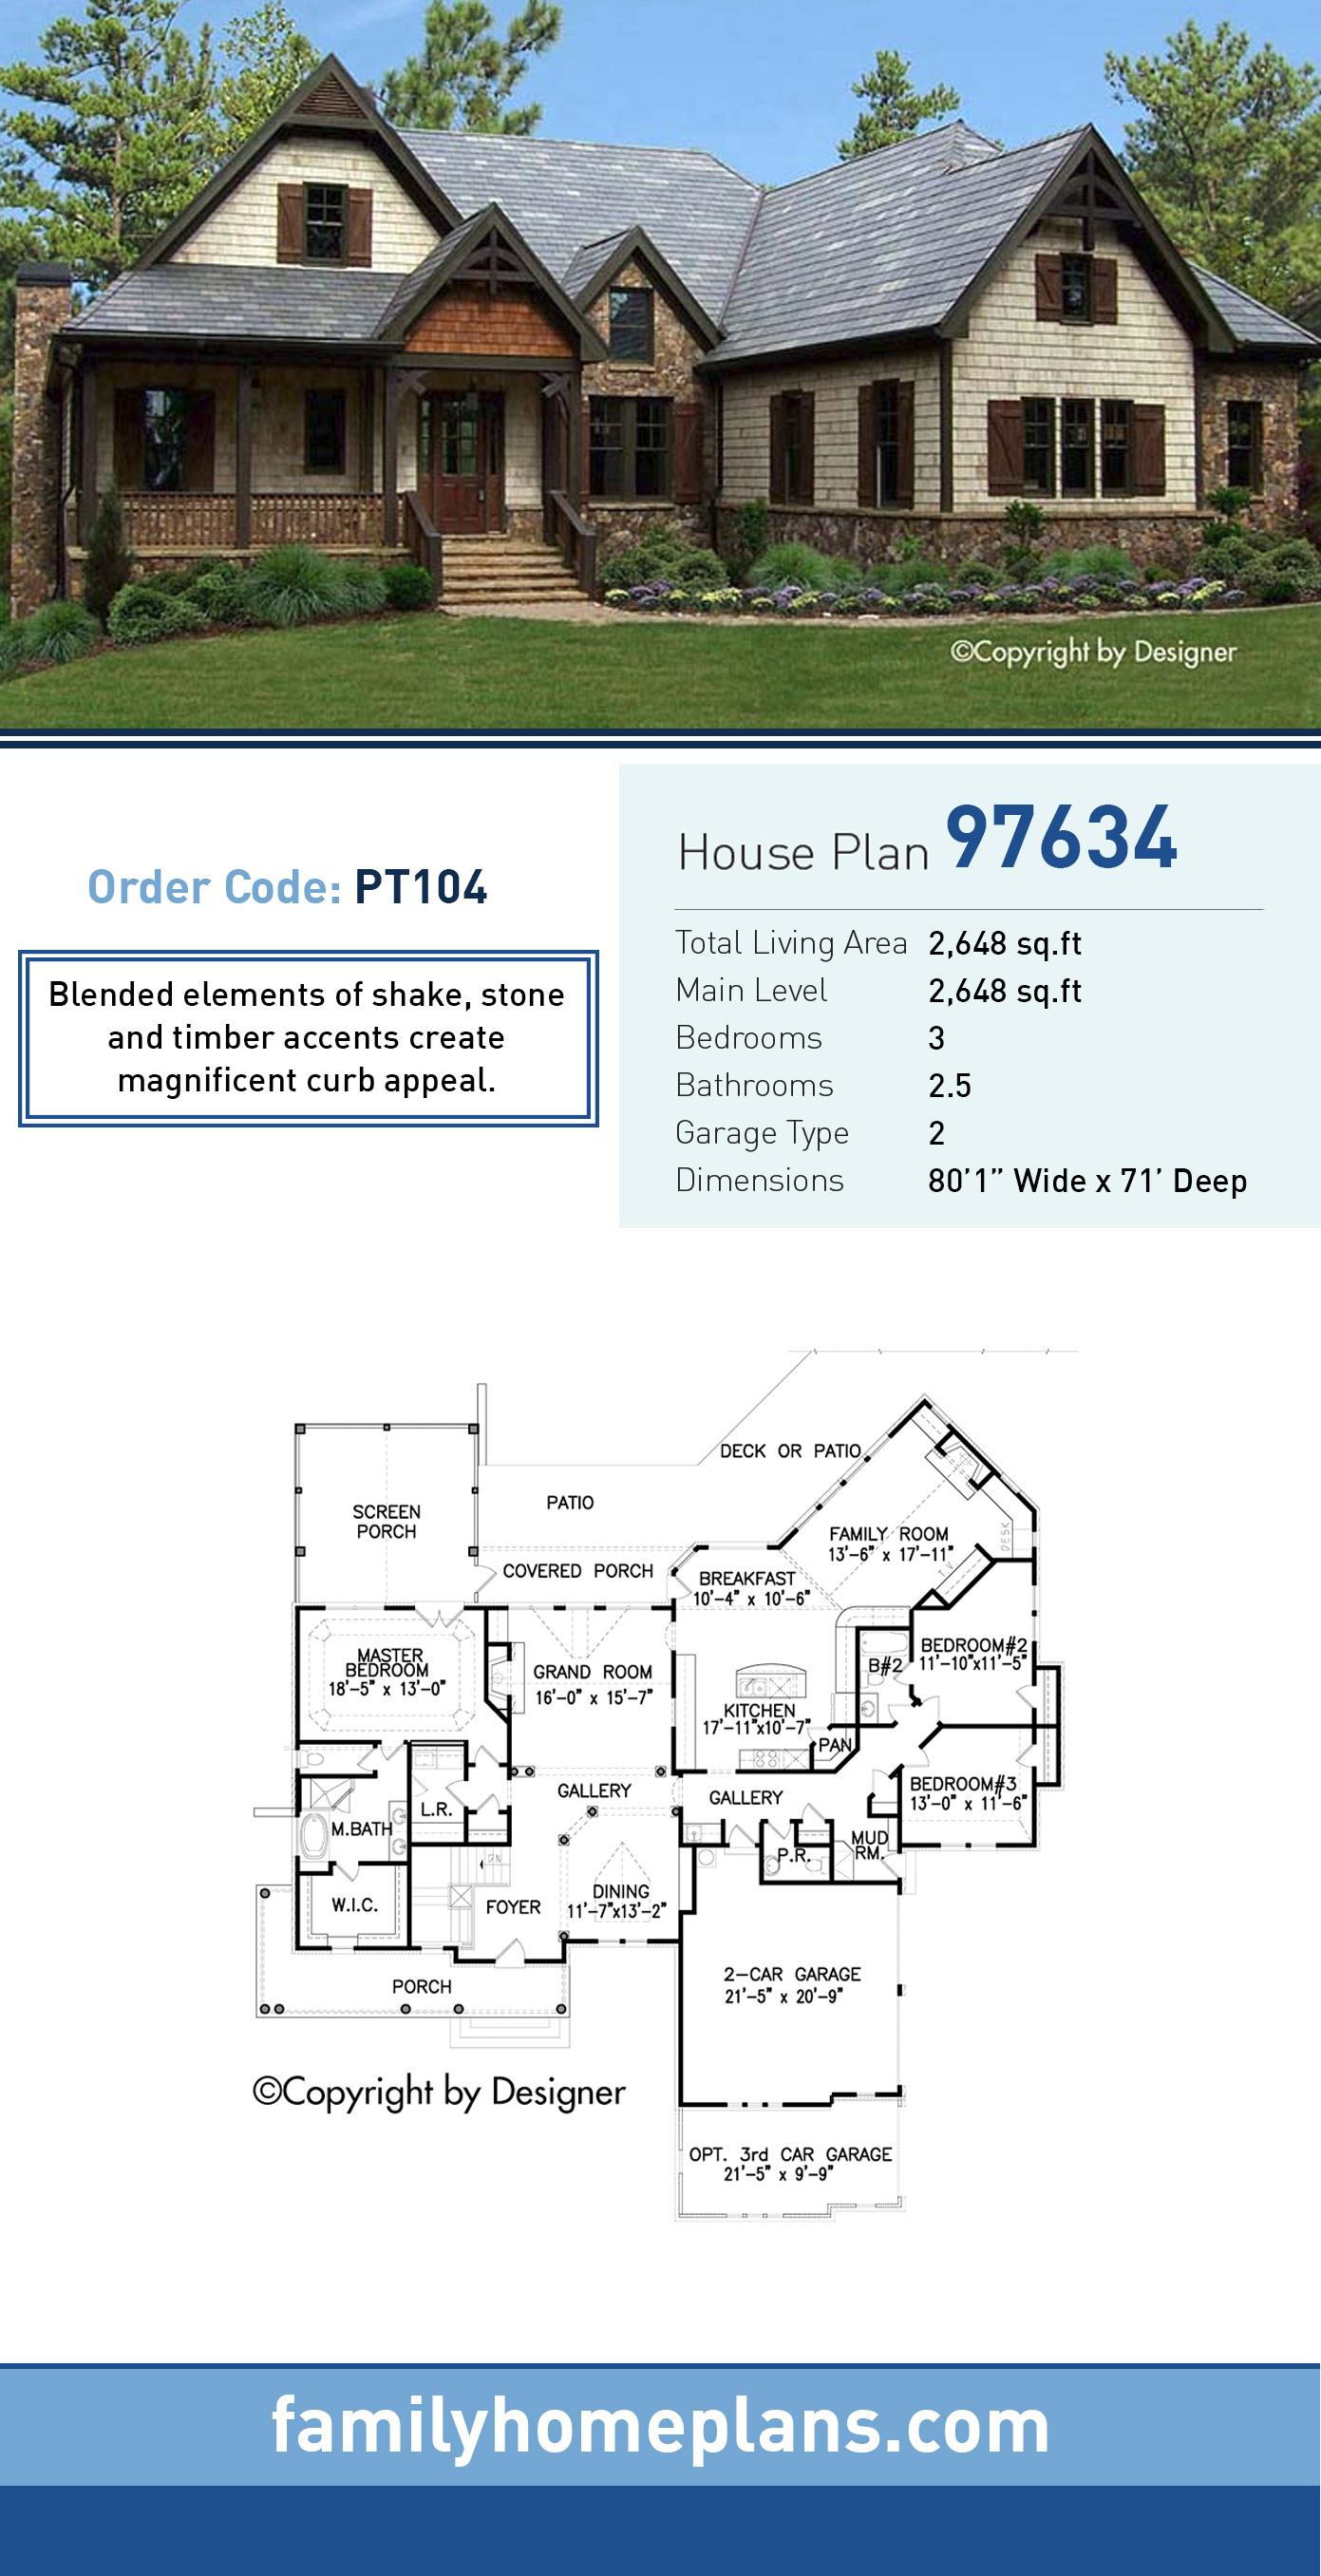 Bungalow, Cottage, Country, Craftsman, Southern, Traditional House Plan 97634 with 3 Beds, 3 Baths, 2 Car Garage